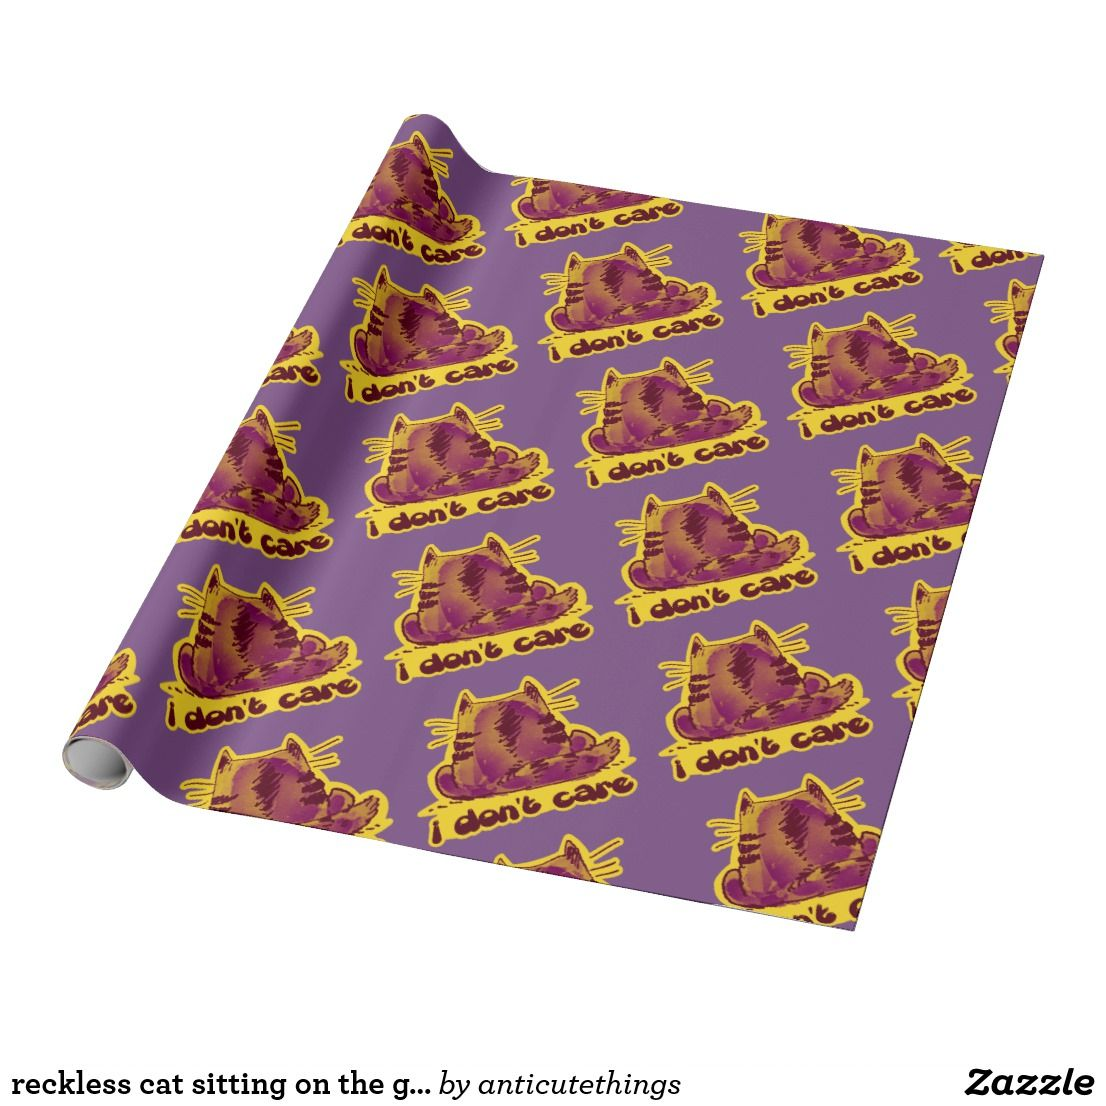 reckless cat sitting on the ground funny cartoon #idontcare #dontcare #reckless #cat #kitty #wrapping #paper #craft #cats #catlovers #catslover #cartoon #illustration #gift #ideas #giftideas #kids